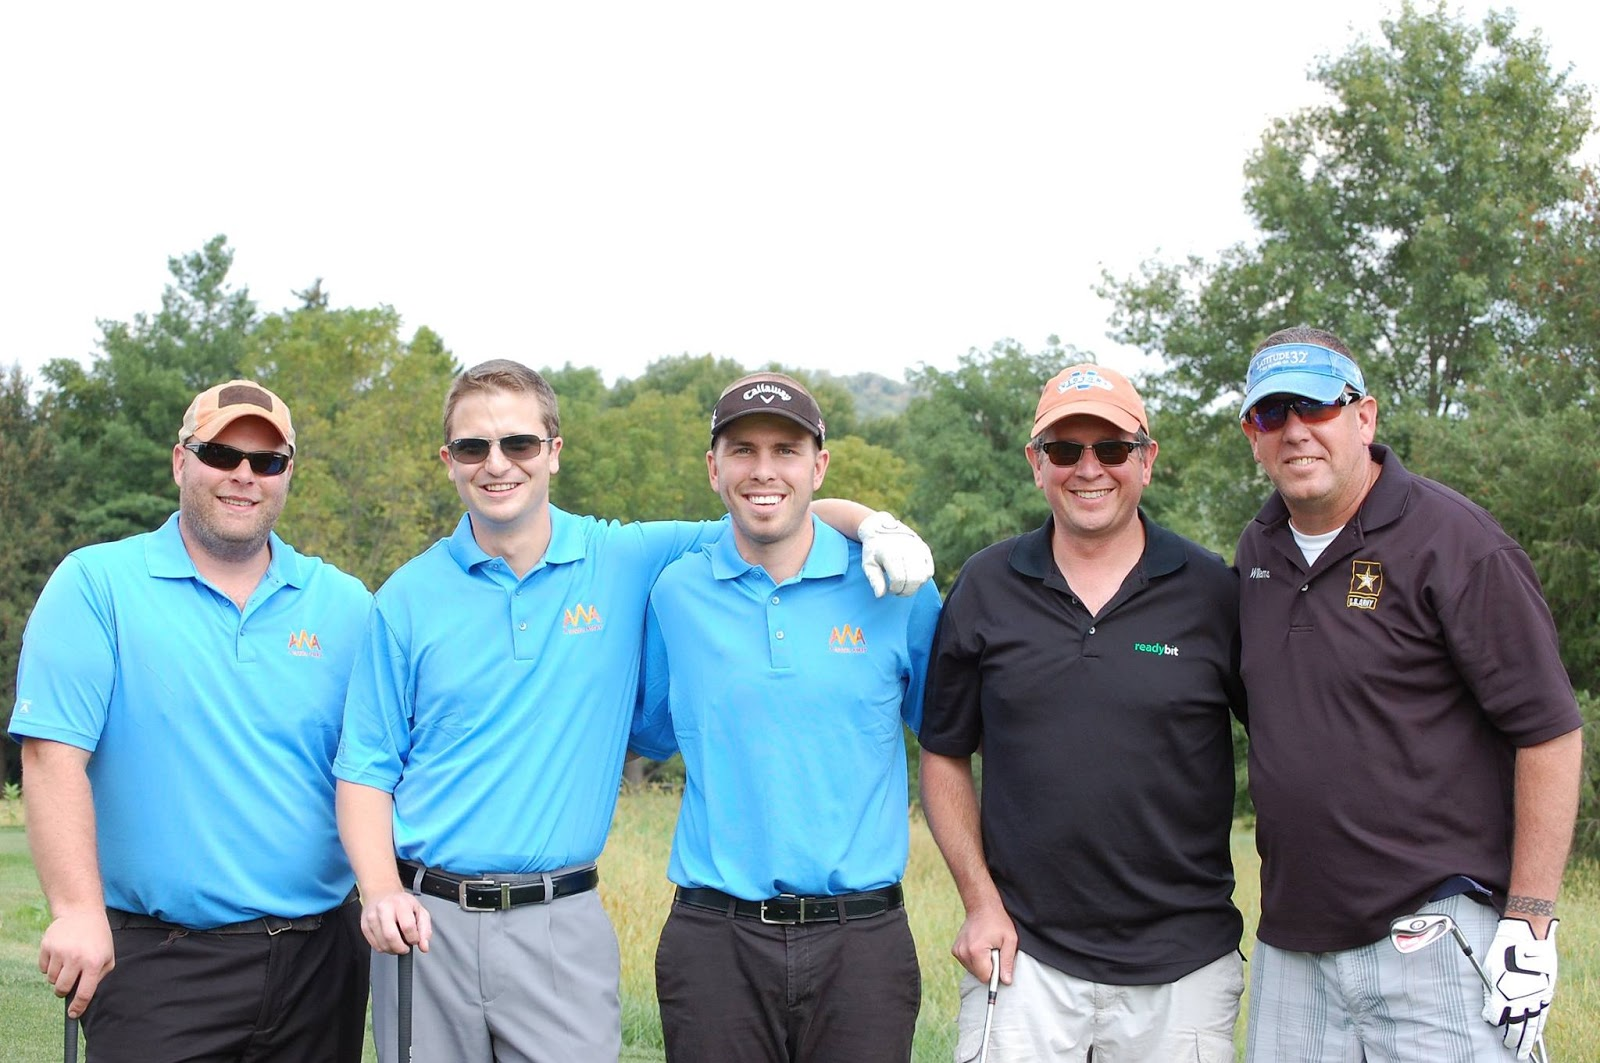 Caleb with AWA friends and supporters at the Golf Tournament in 2014